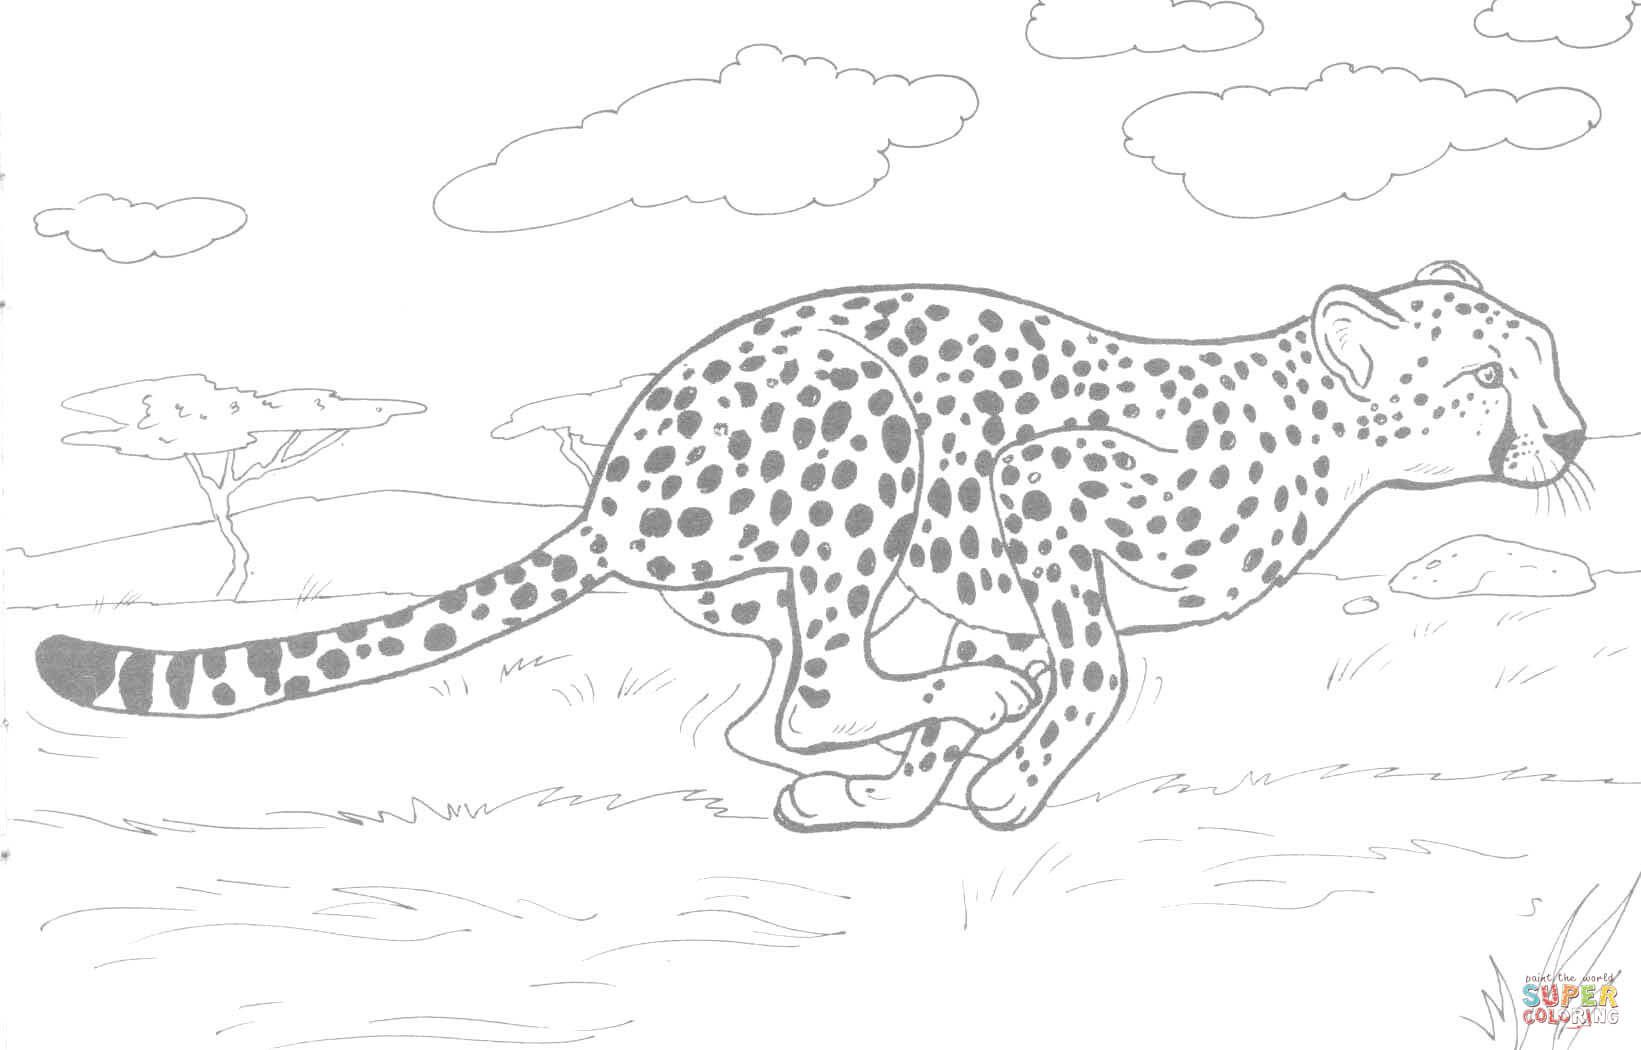 Cheetah Running Coloring Page Free Printable Coloring Pages Animal Coloring Pages Mermaid Coloring Pages Printable Animal Pictures